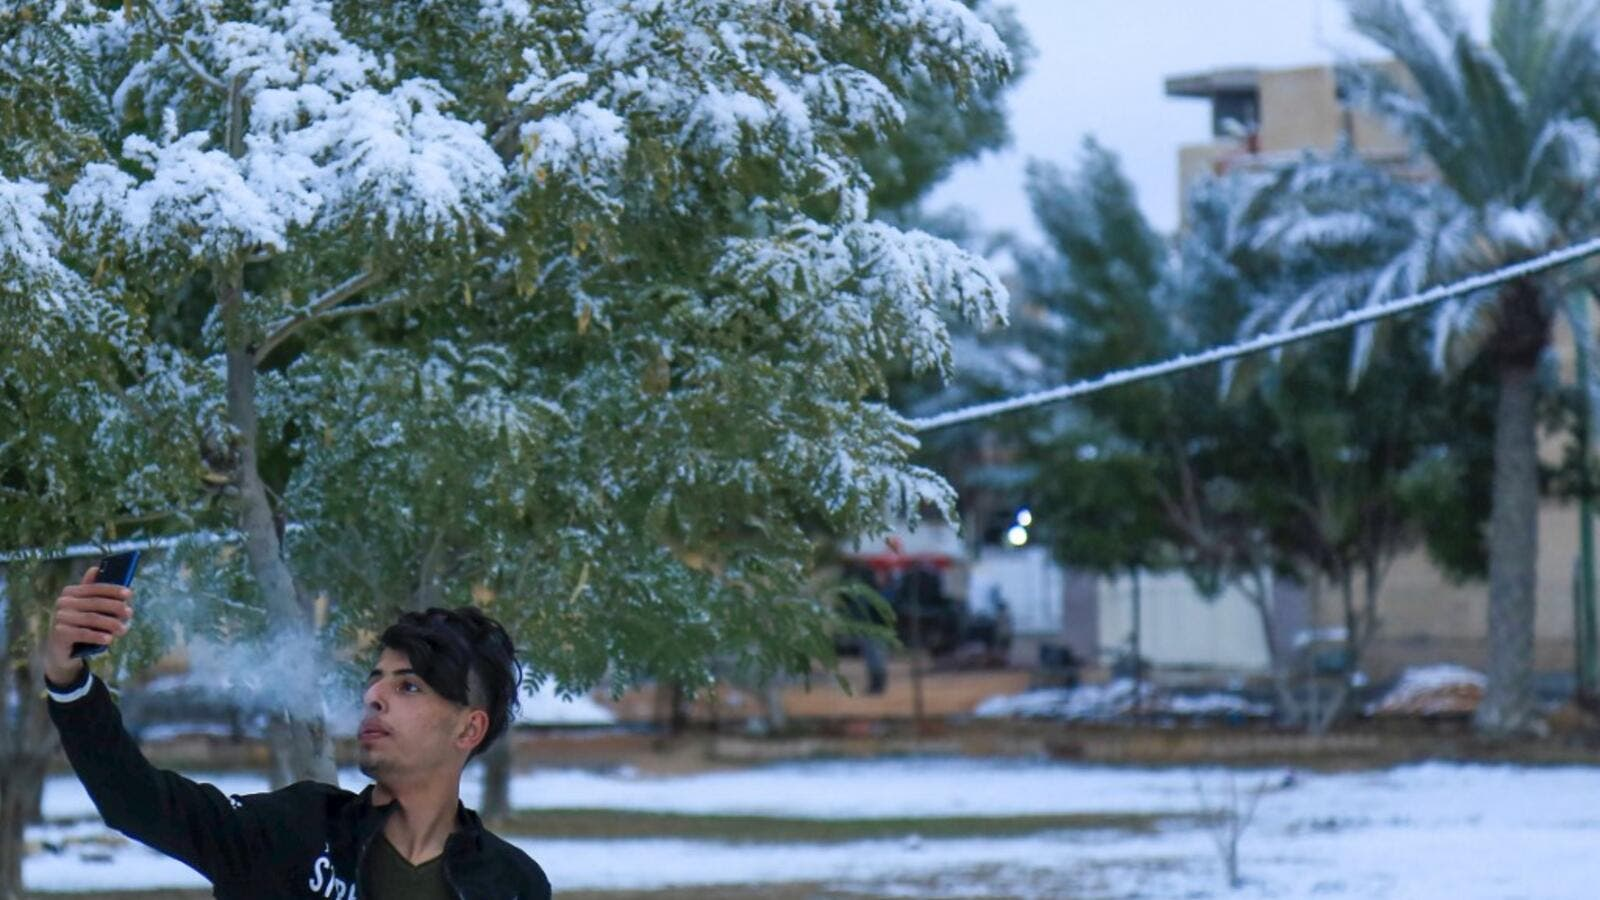 Snow Falls in Baghdad for First Time Since 2008